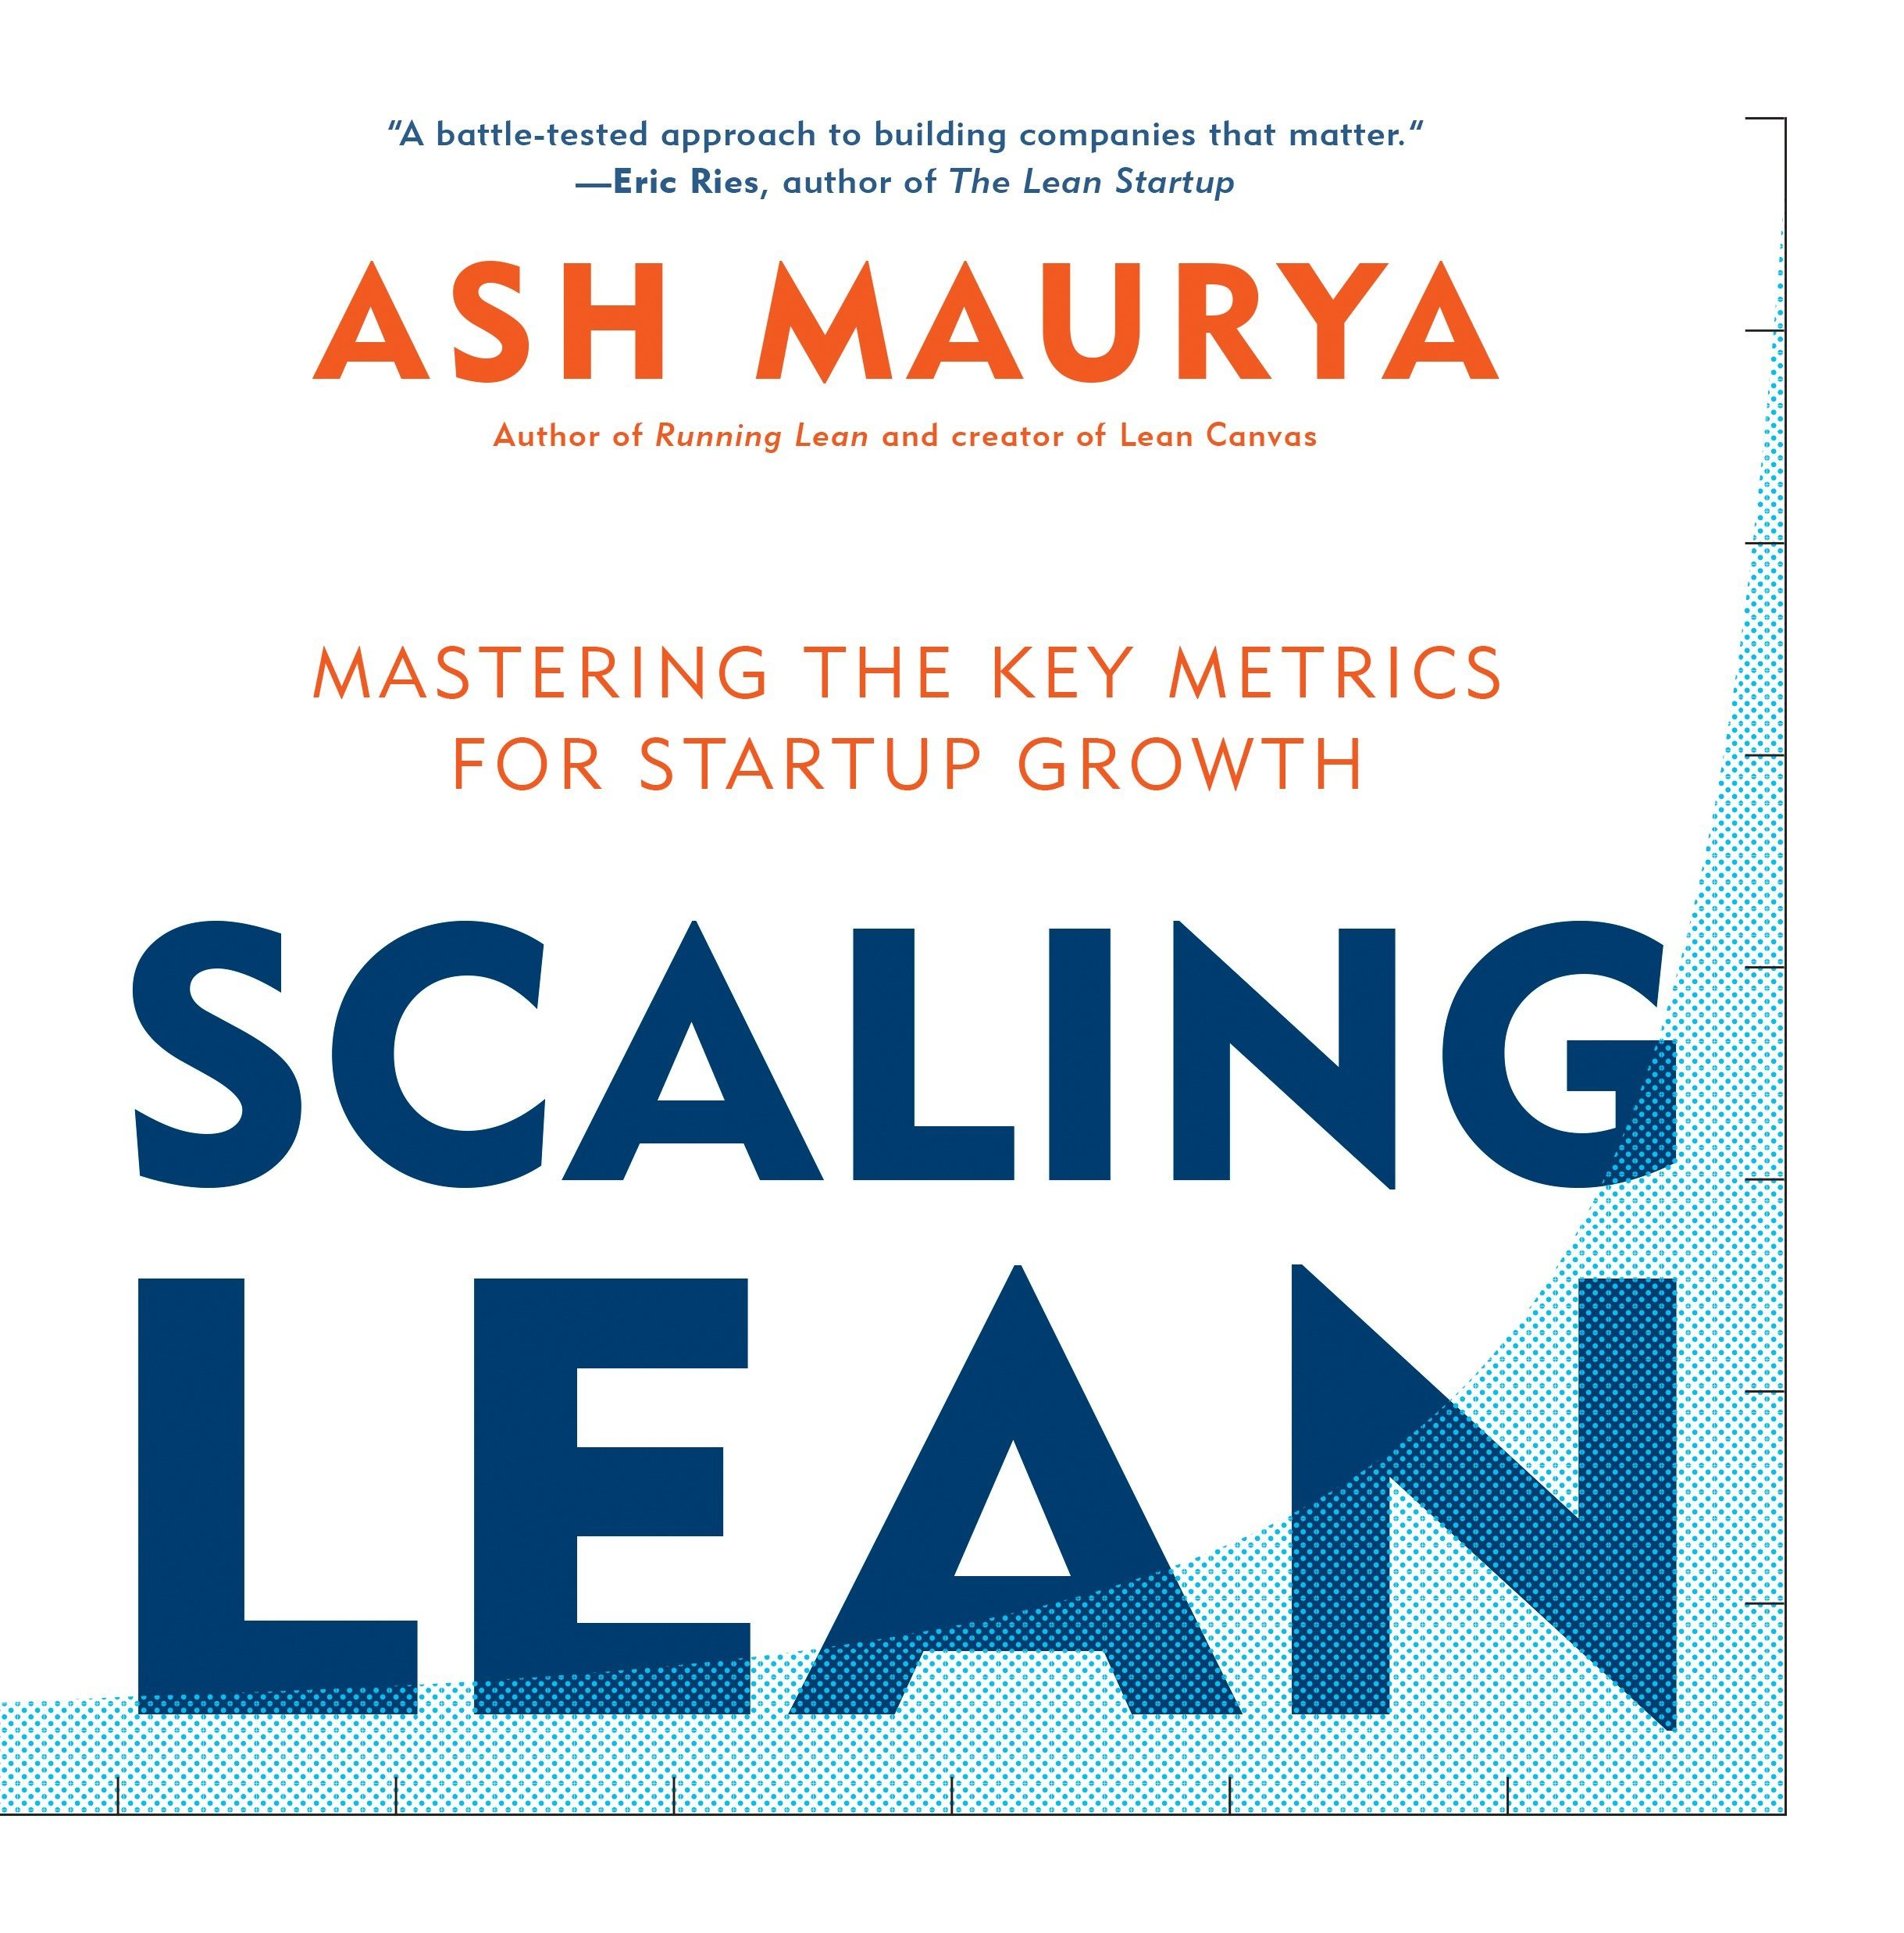 Scaling Lean Mastering Metrics Startup product image